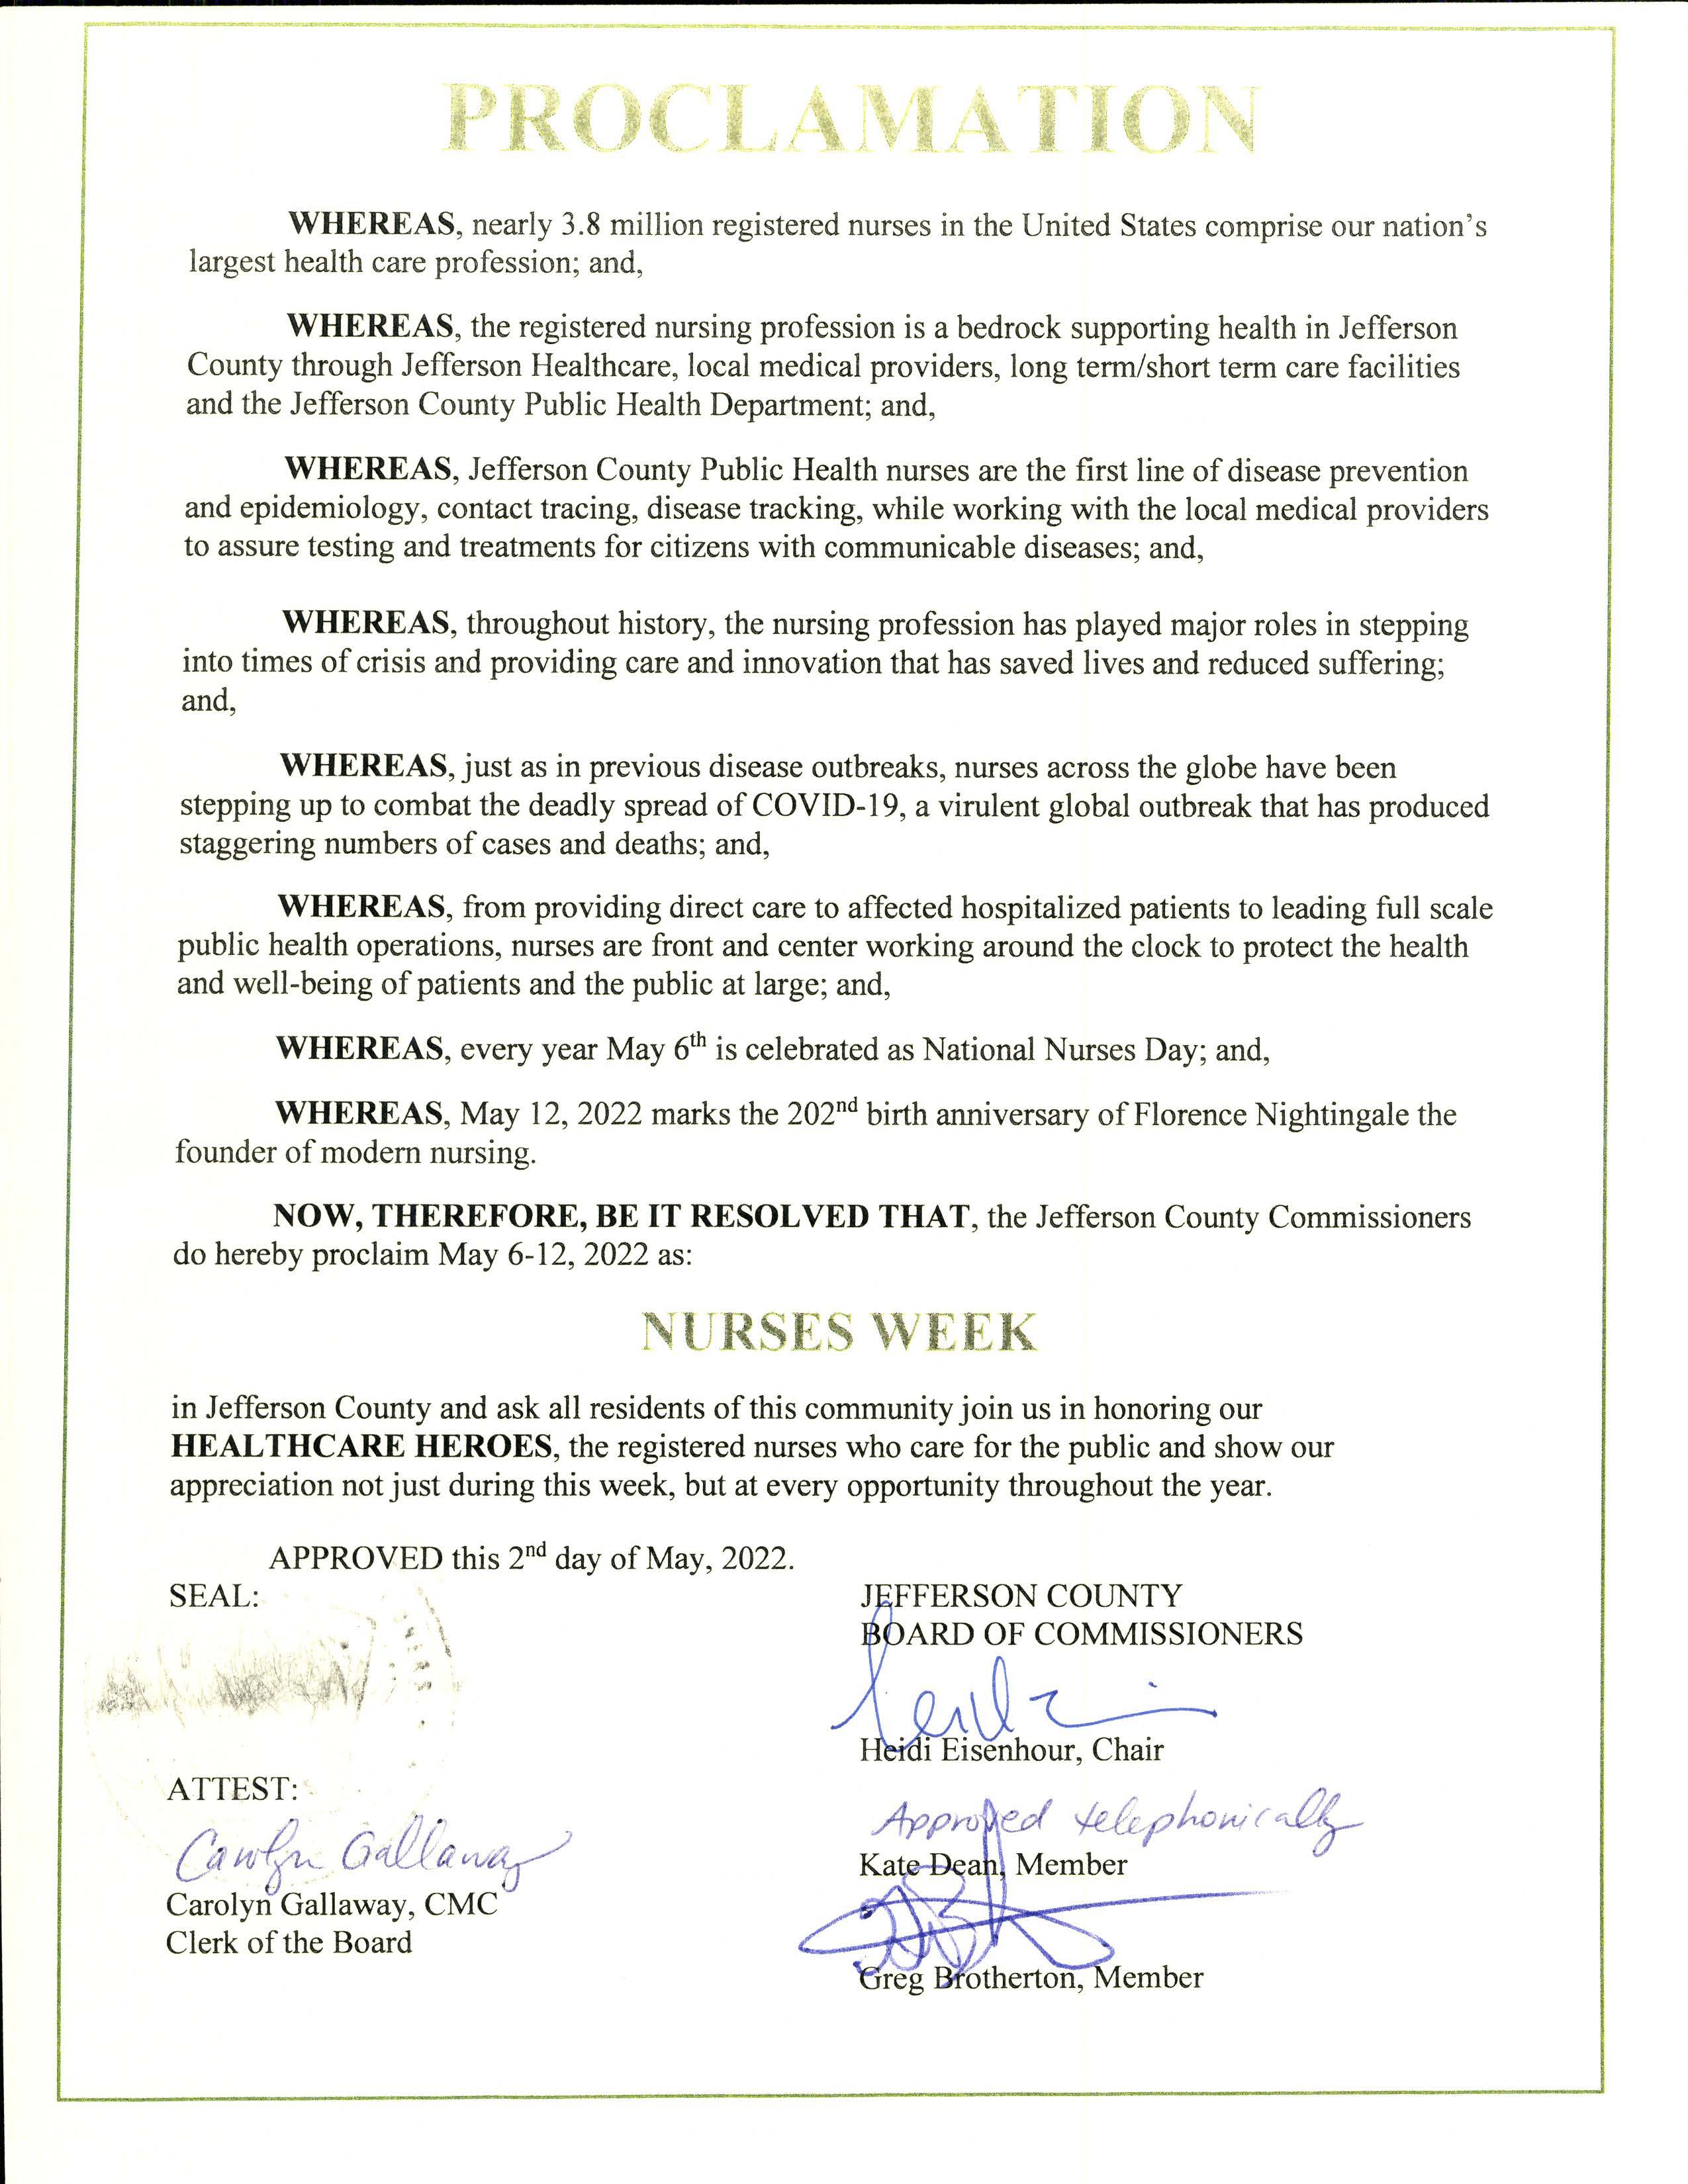 PROCLAMATION re_ Proclaiming May 6-12 2020 as Nurses Week_Page_1